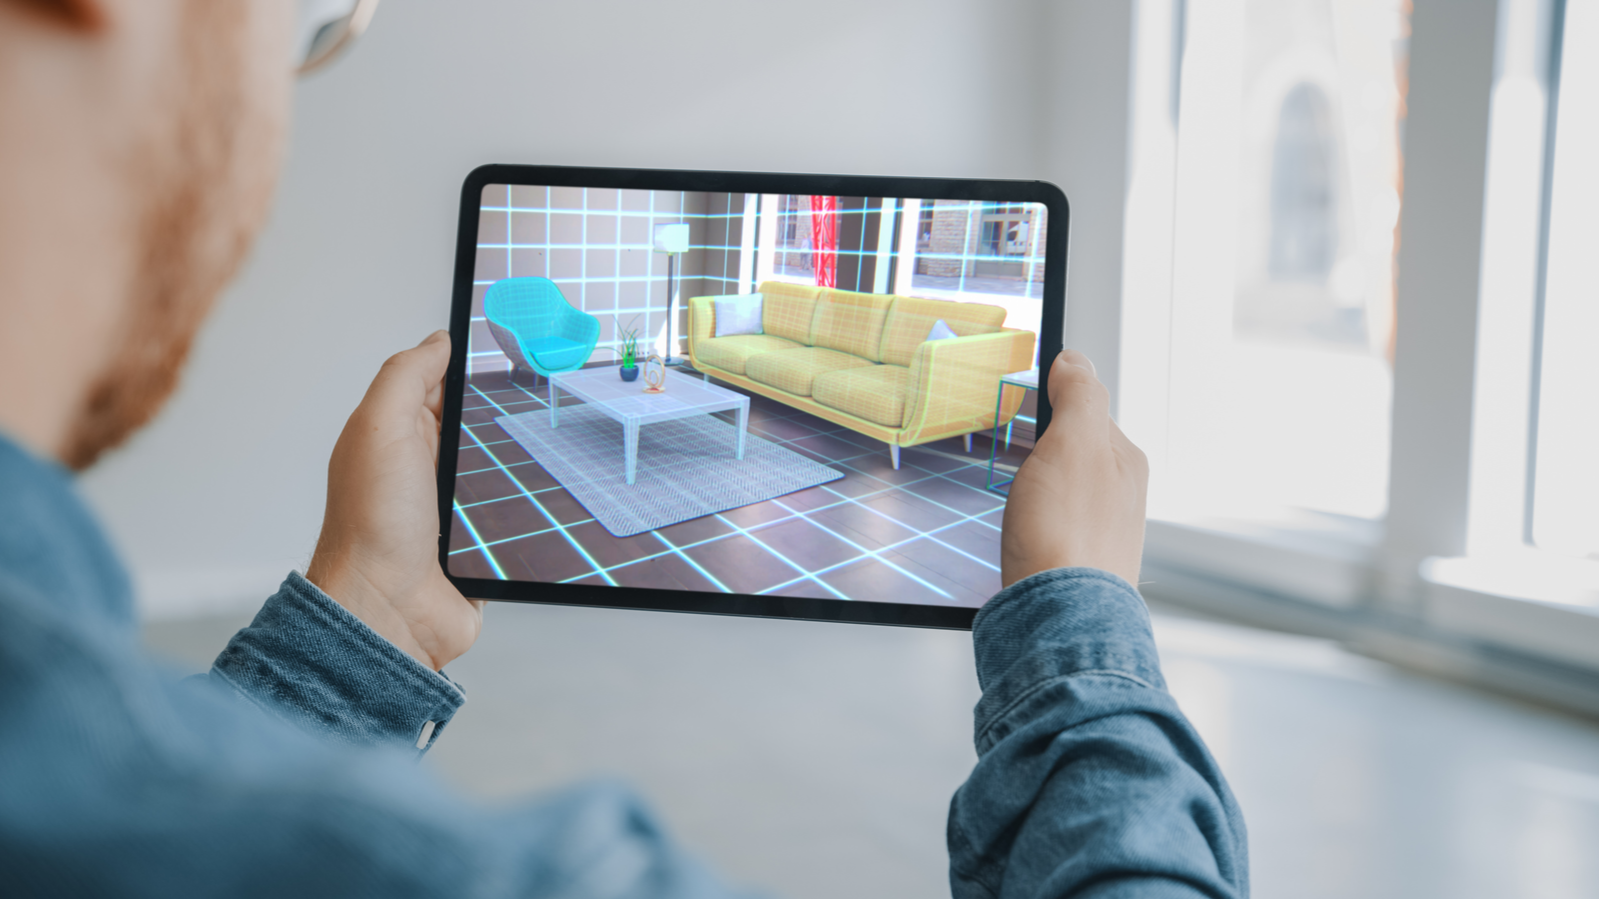 Person holding digital tablet with an augmented reality interior design app open while trying out furniture in the room virtually